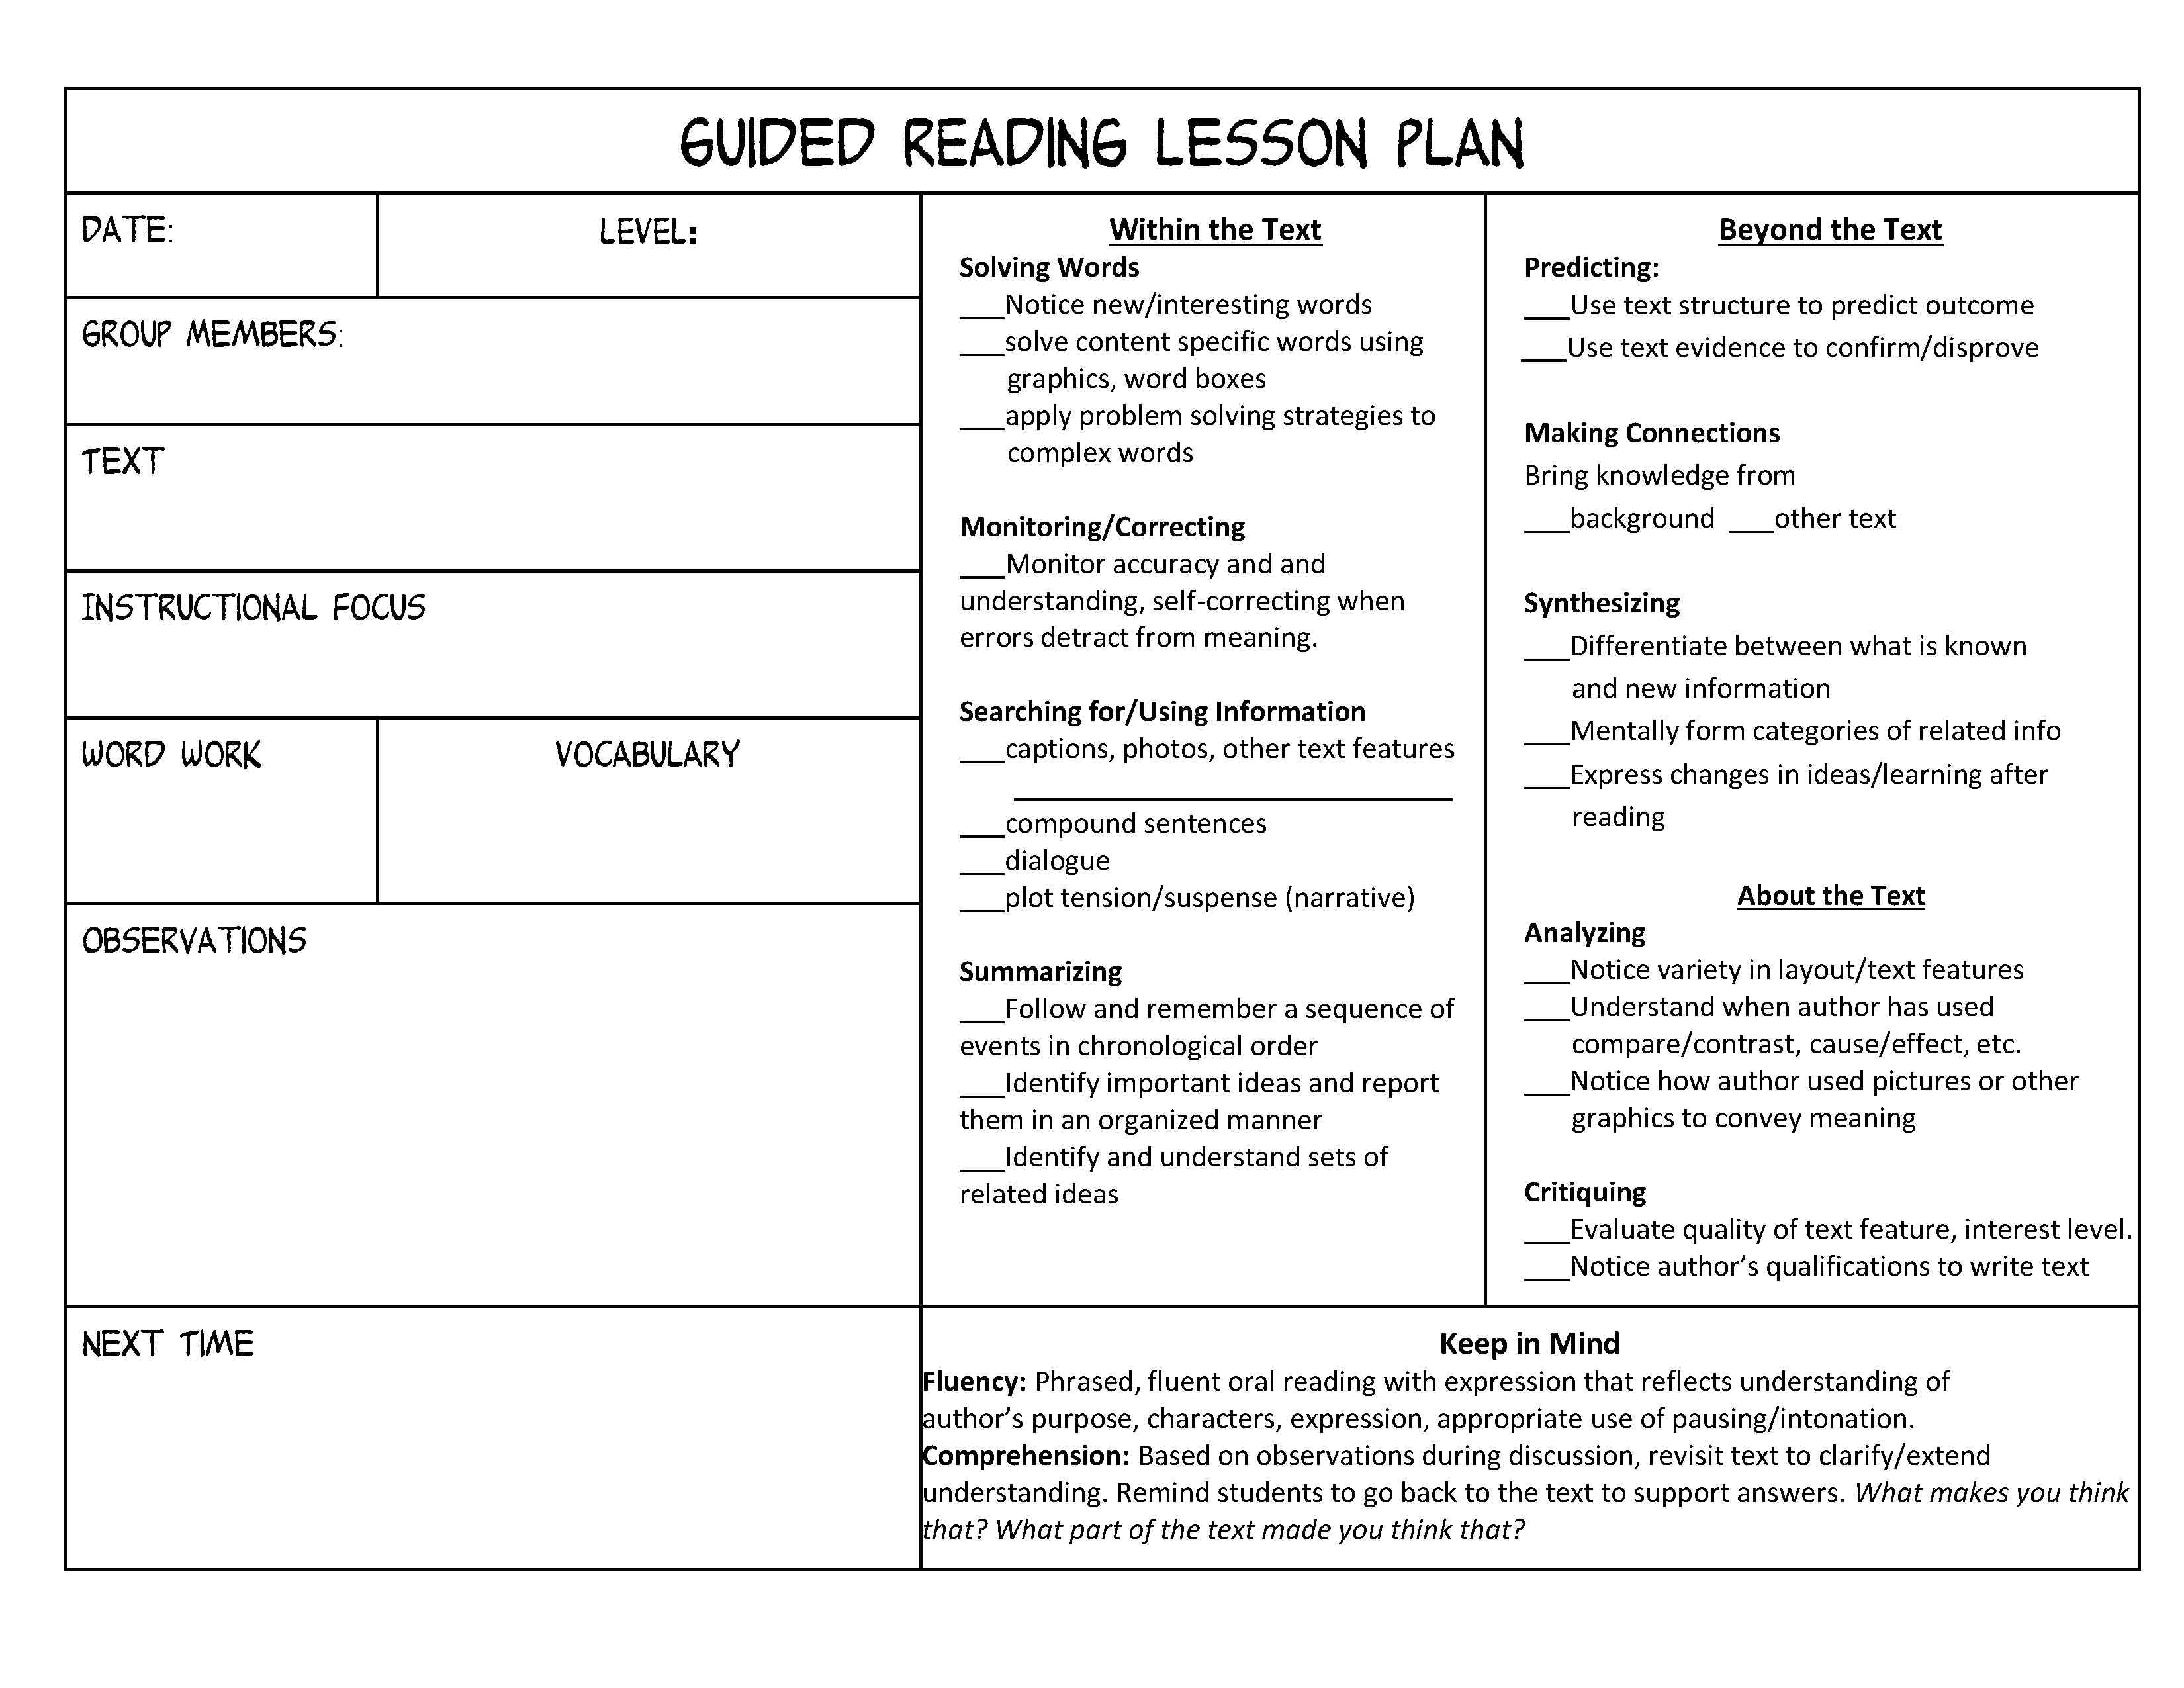 Guided Reading Organization Made Easy Scholastic - Free kindergarten lesson plan template